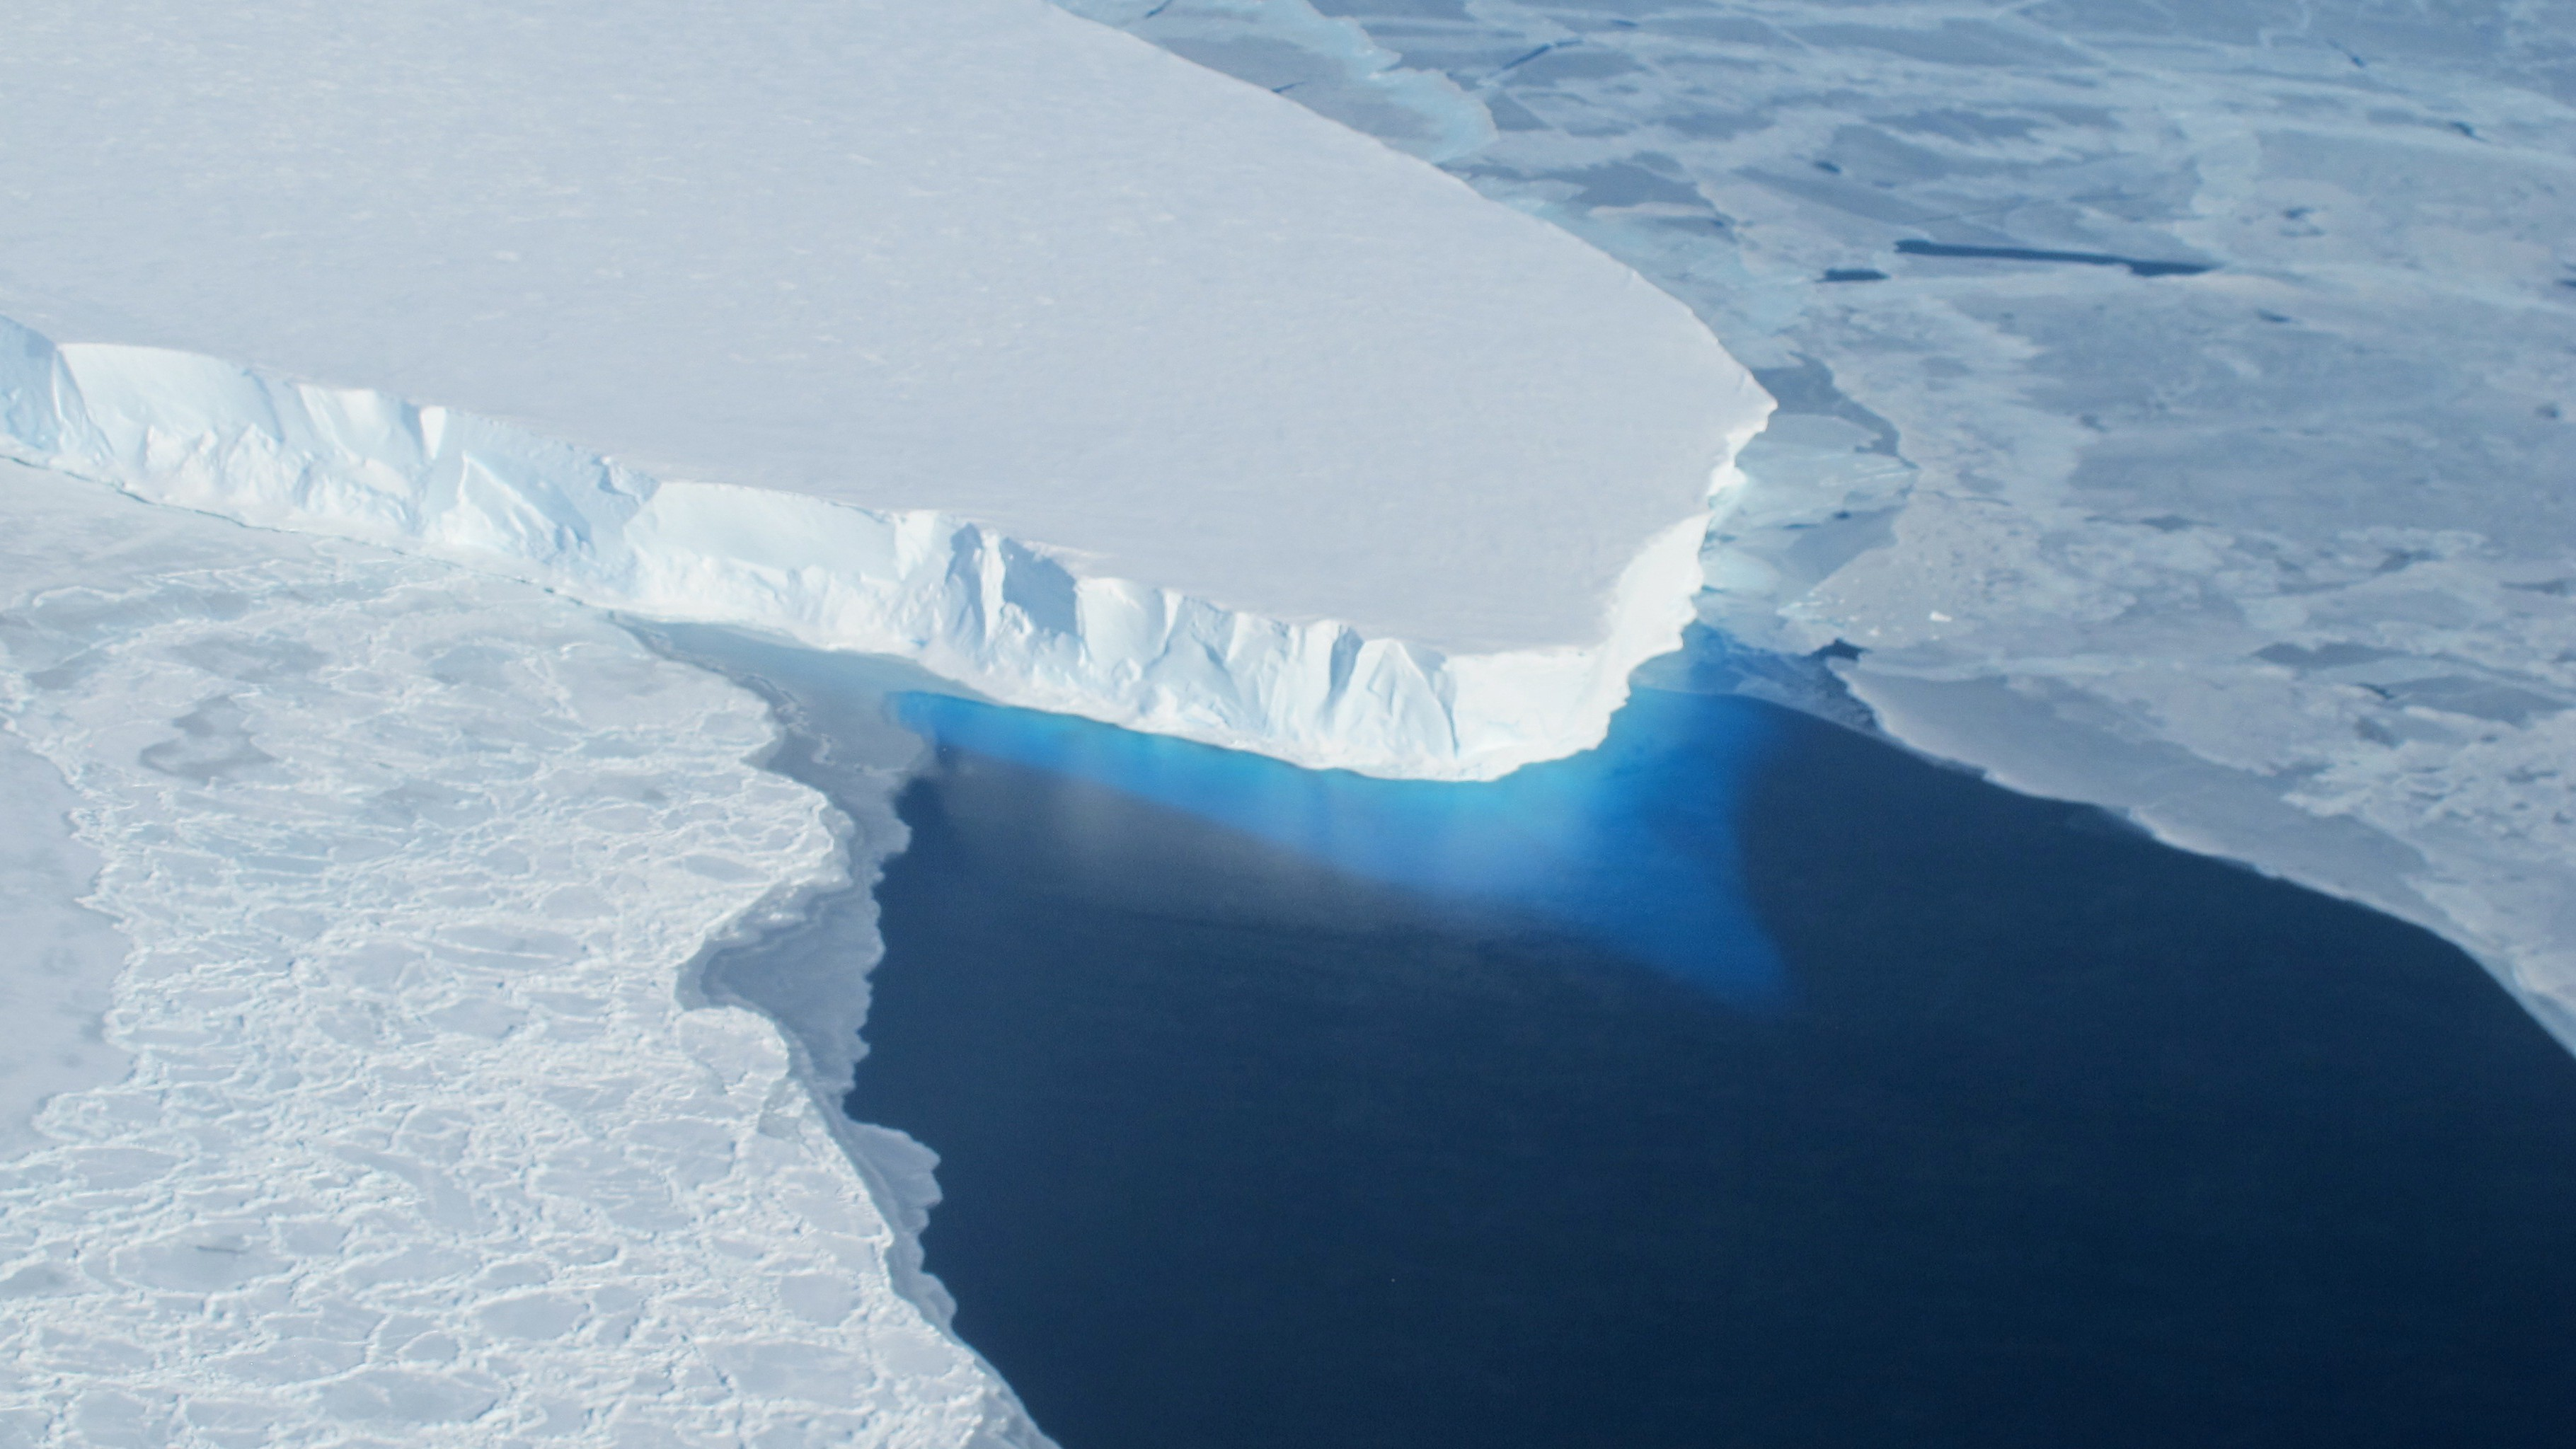 Scientists Warn the Collapse of This Glacier Could Be Globally Catastrophic